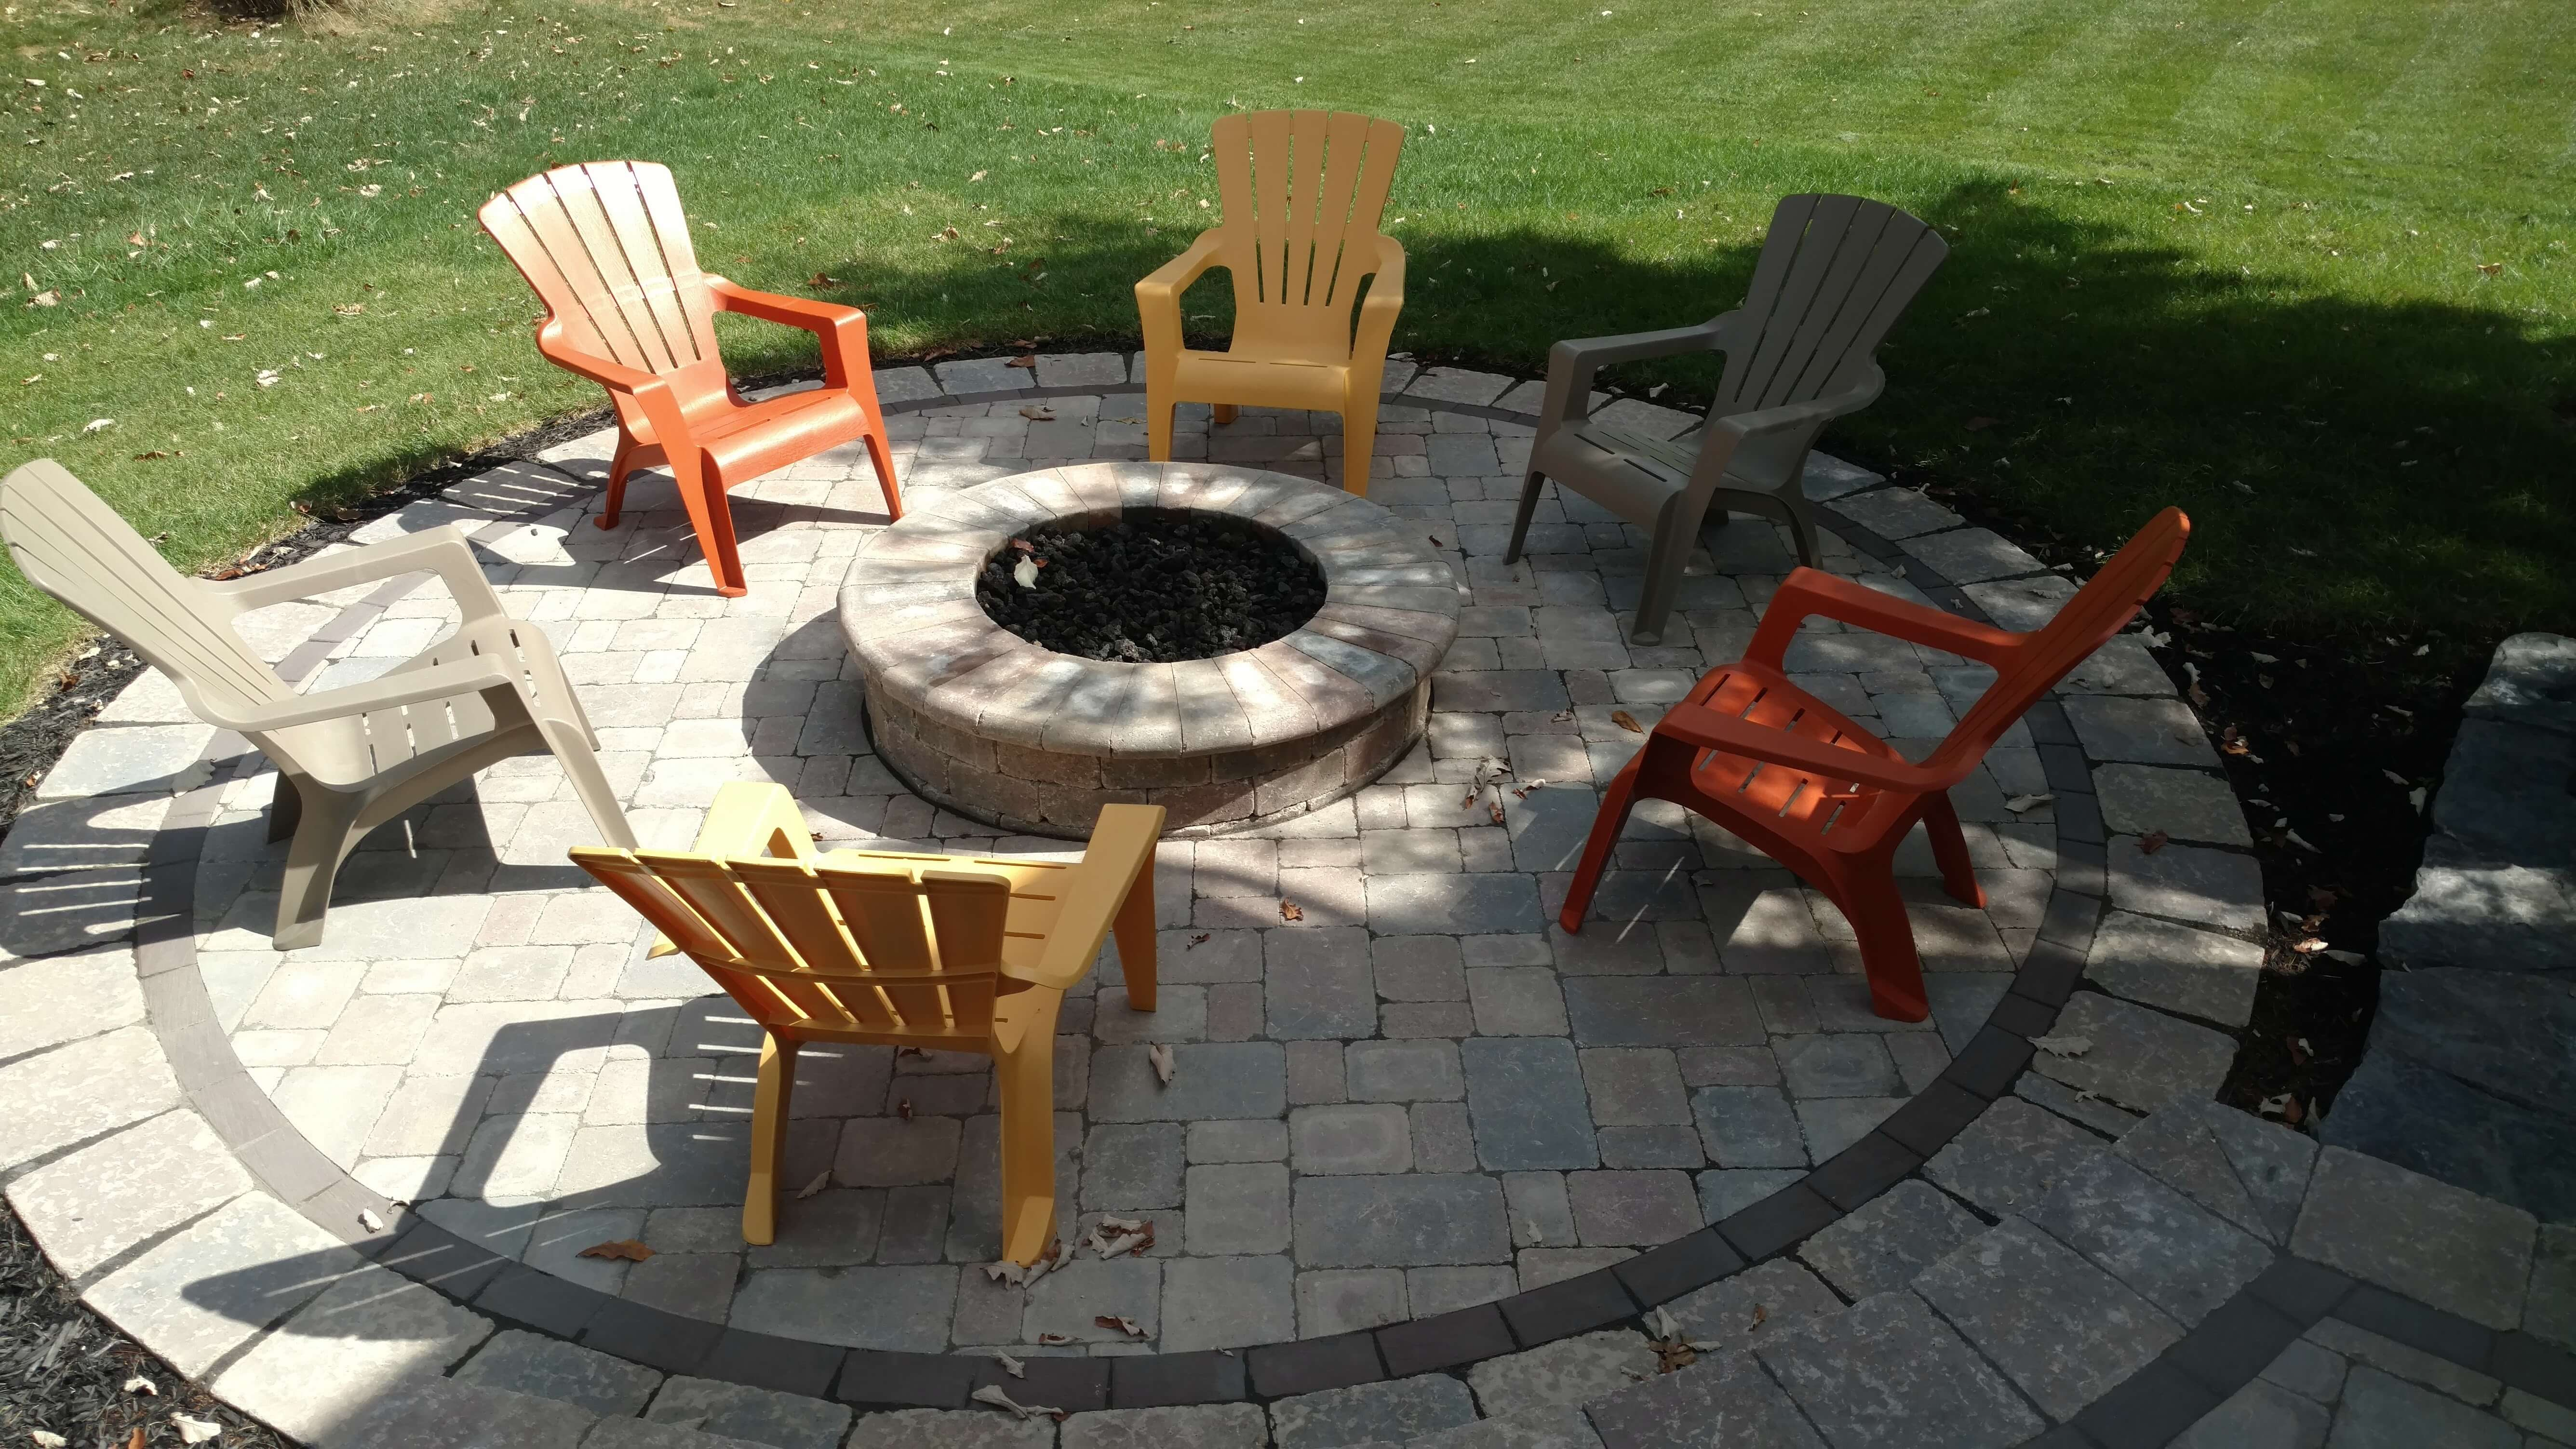 Fire pit on patio with chairs